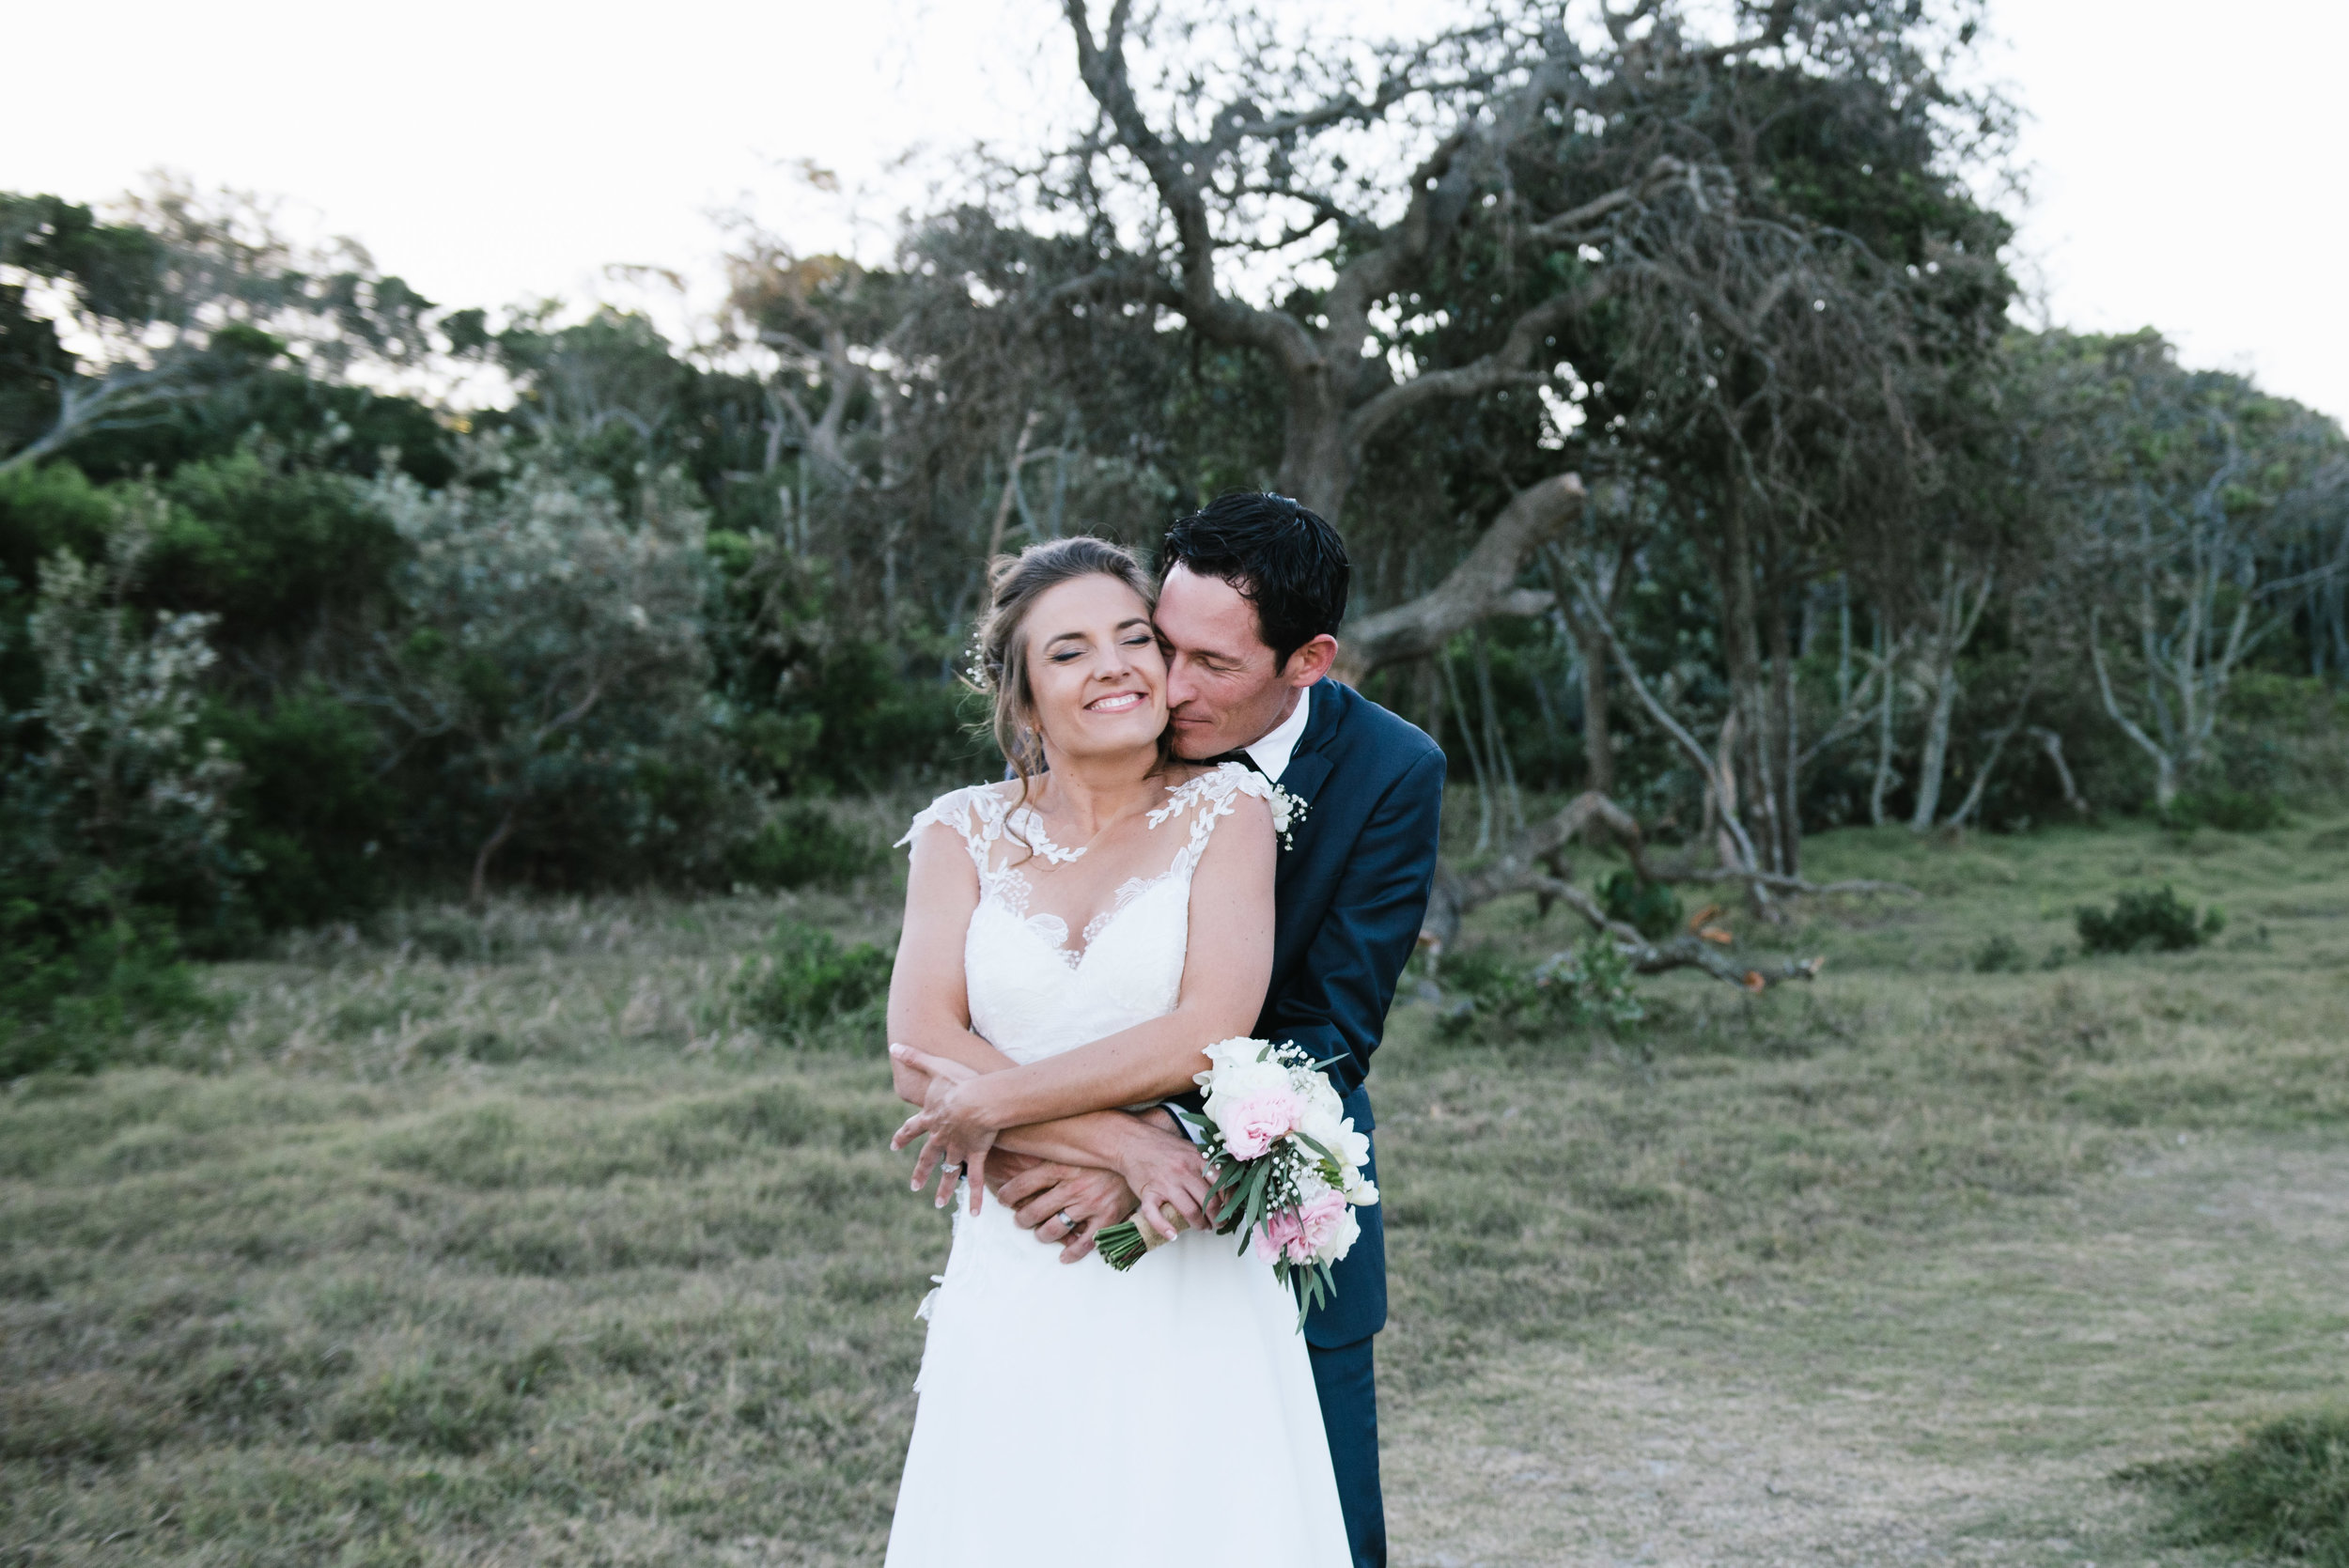 Am and Sam- skyla sage photography weddings, families, byron bay,tweed coast,kingscliff,cabarita,gold coast-524.jpg